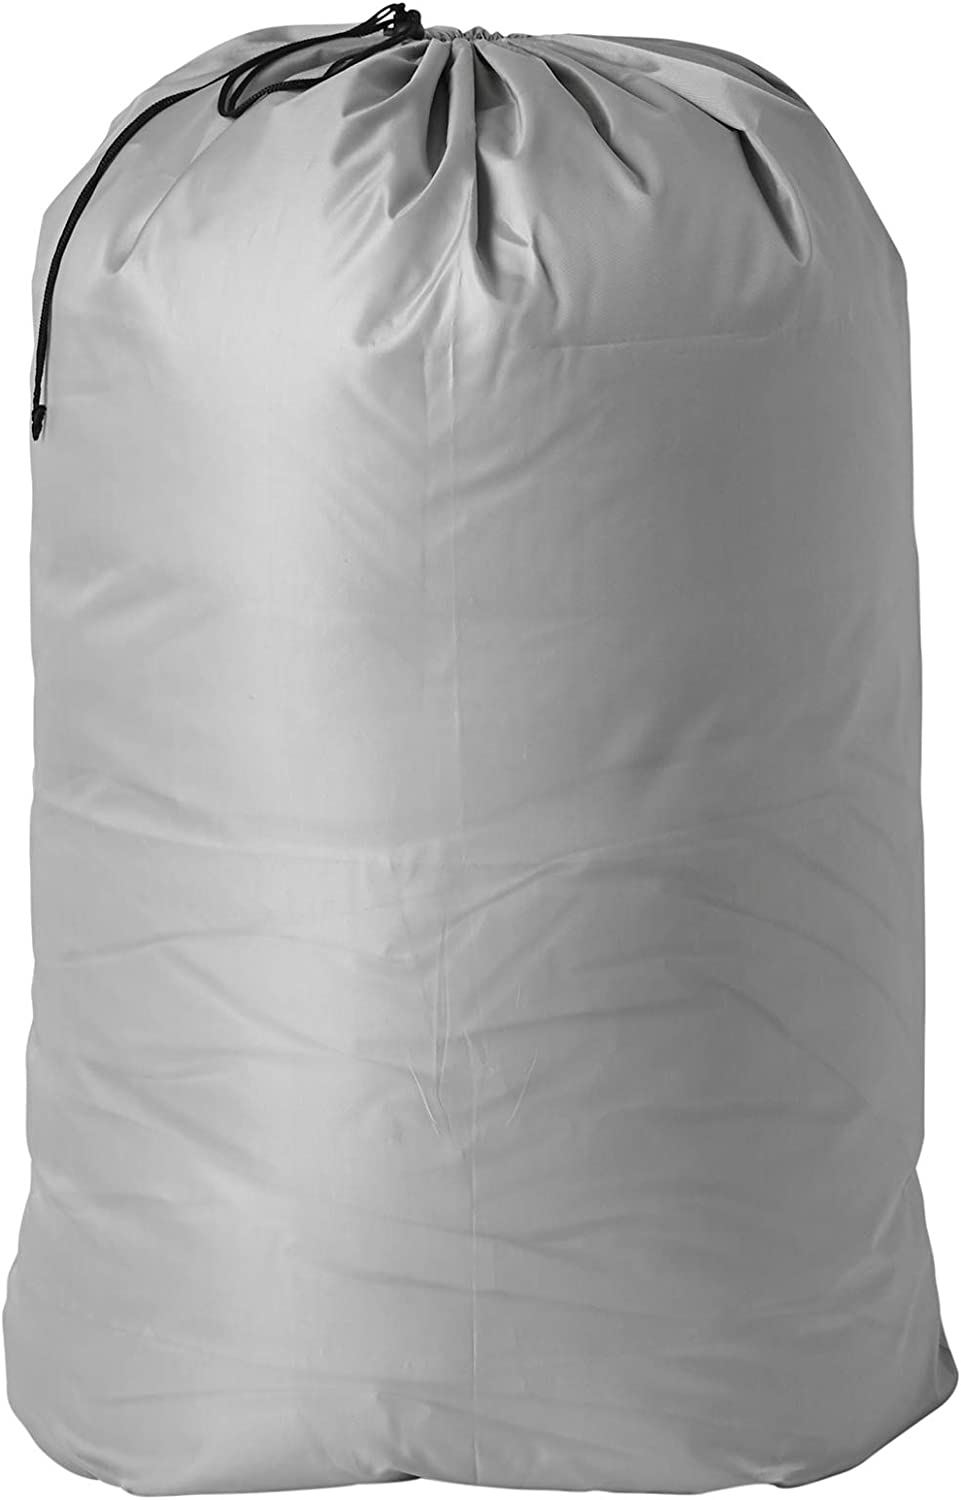 DormCo Jumbo Laundry Bag - TUSK Storage - Gray